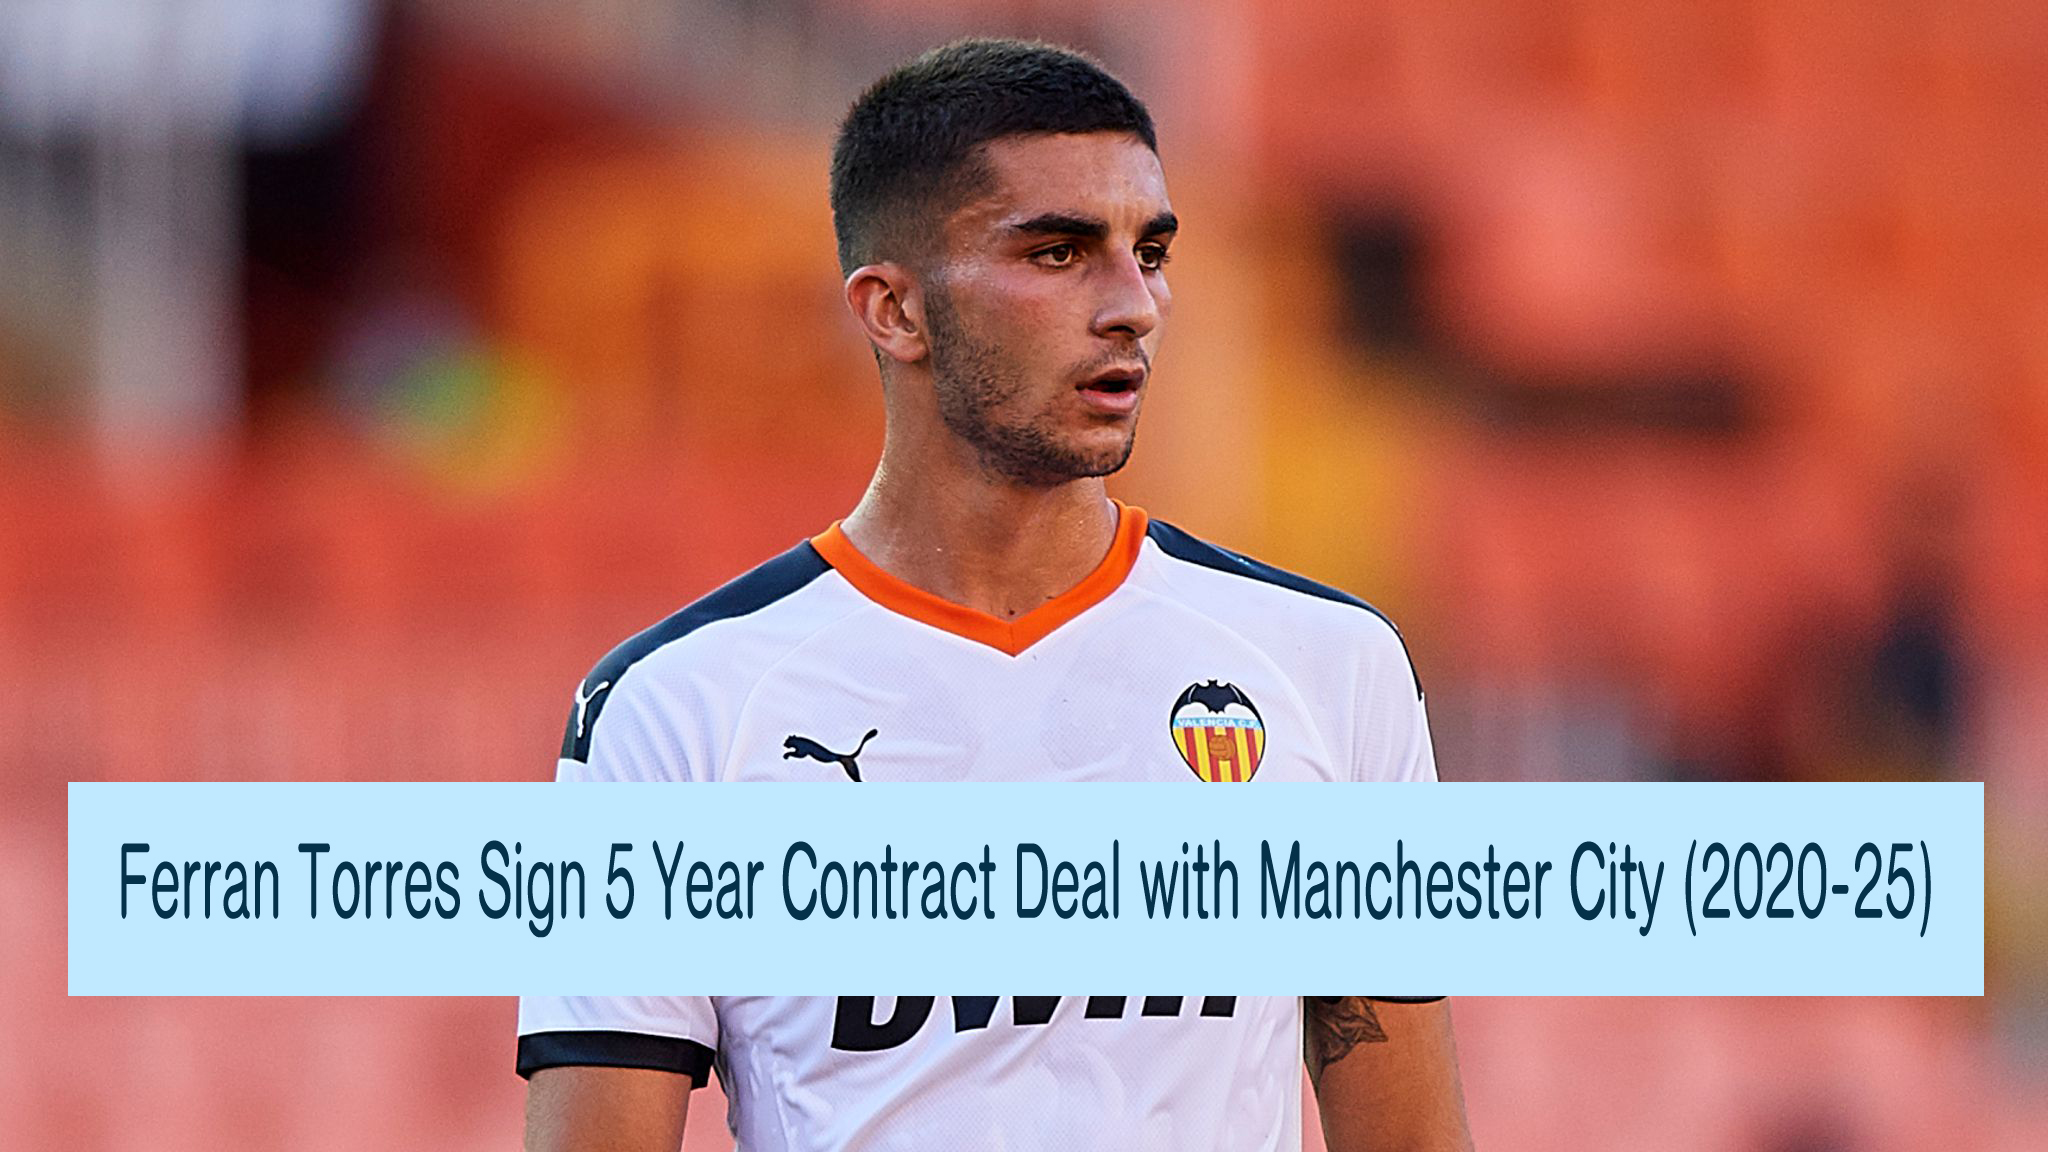 Ferran Torres Sign 5 Year Contract Deal with Manchester City 2020 25